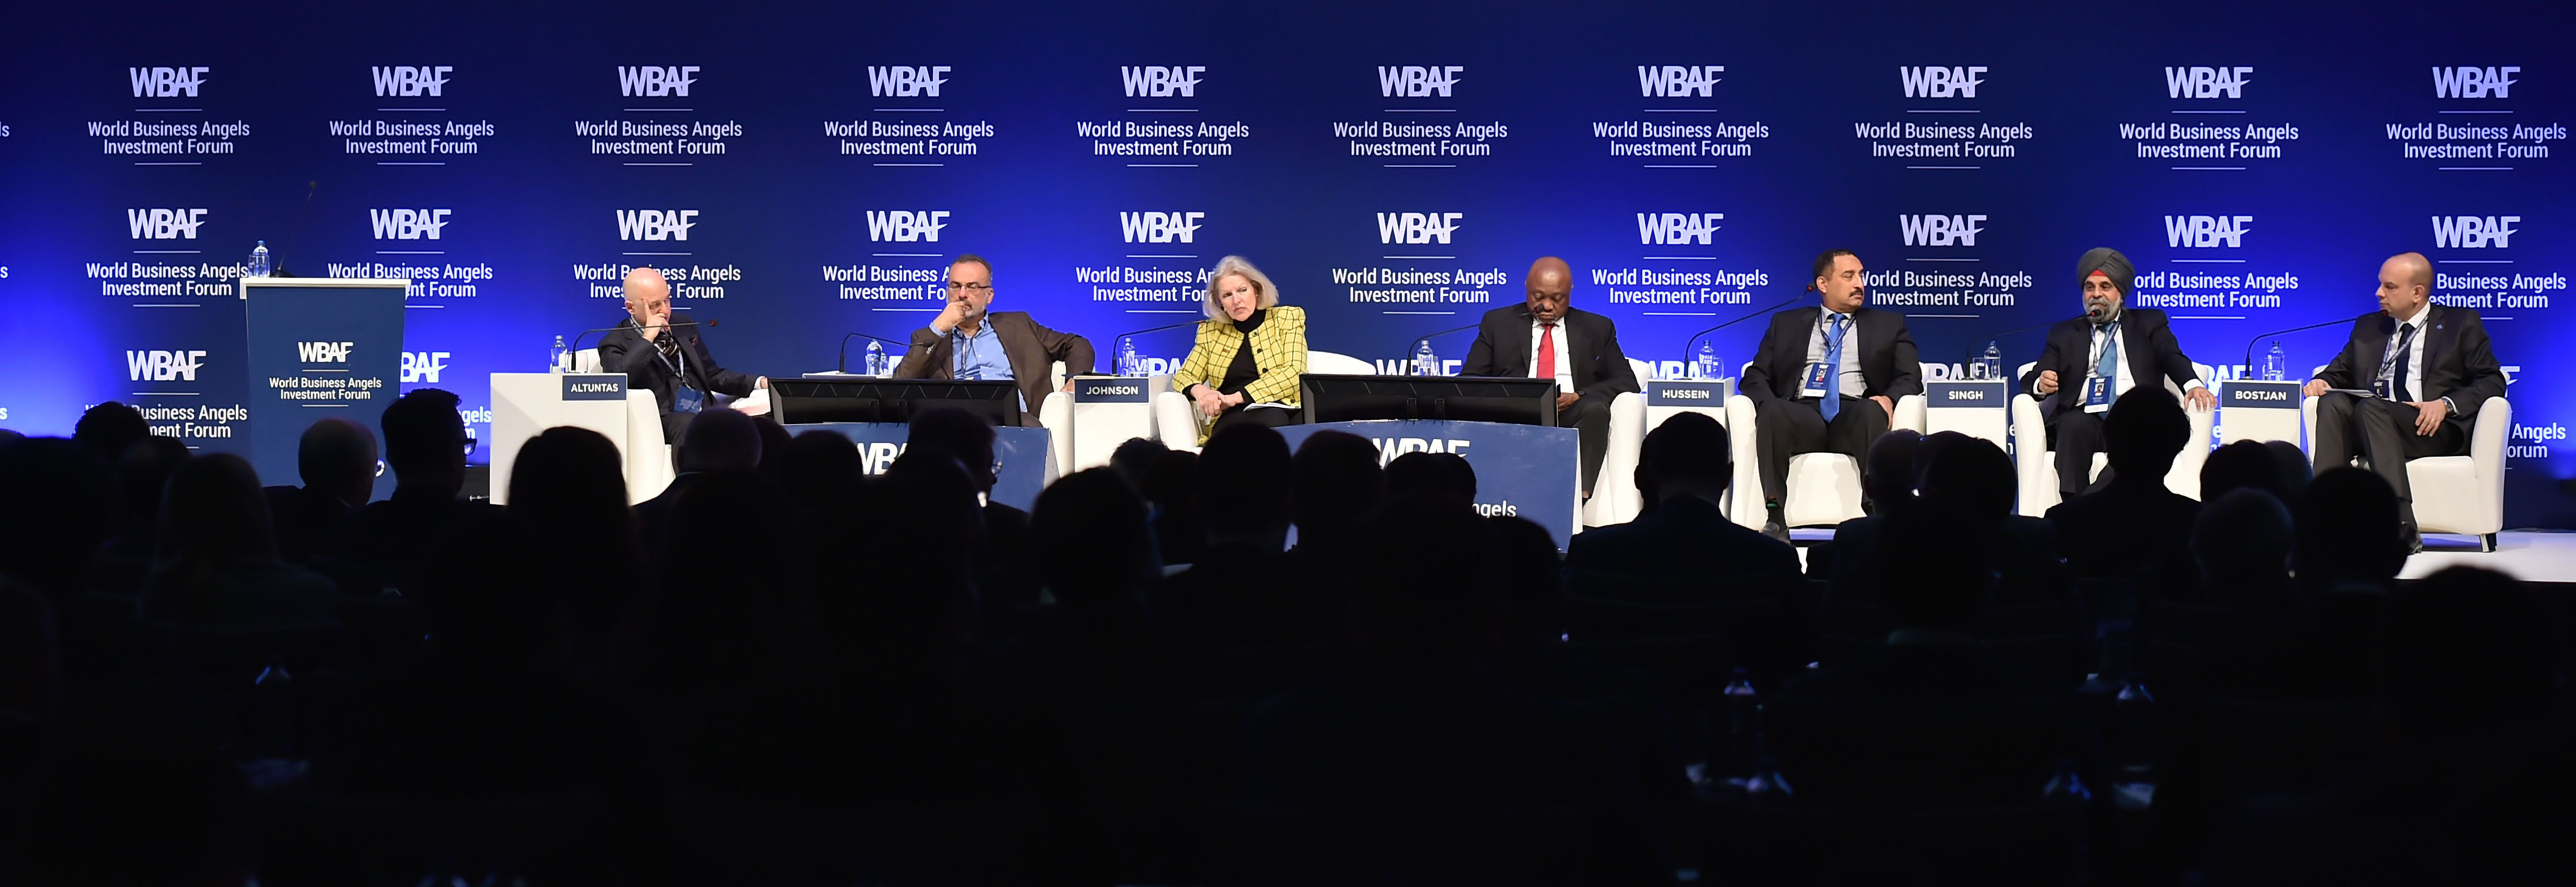 WORLD BUSINESS ANGELS INVESTMENT FORUM Agenda 2018 - WBAF2018